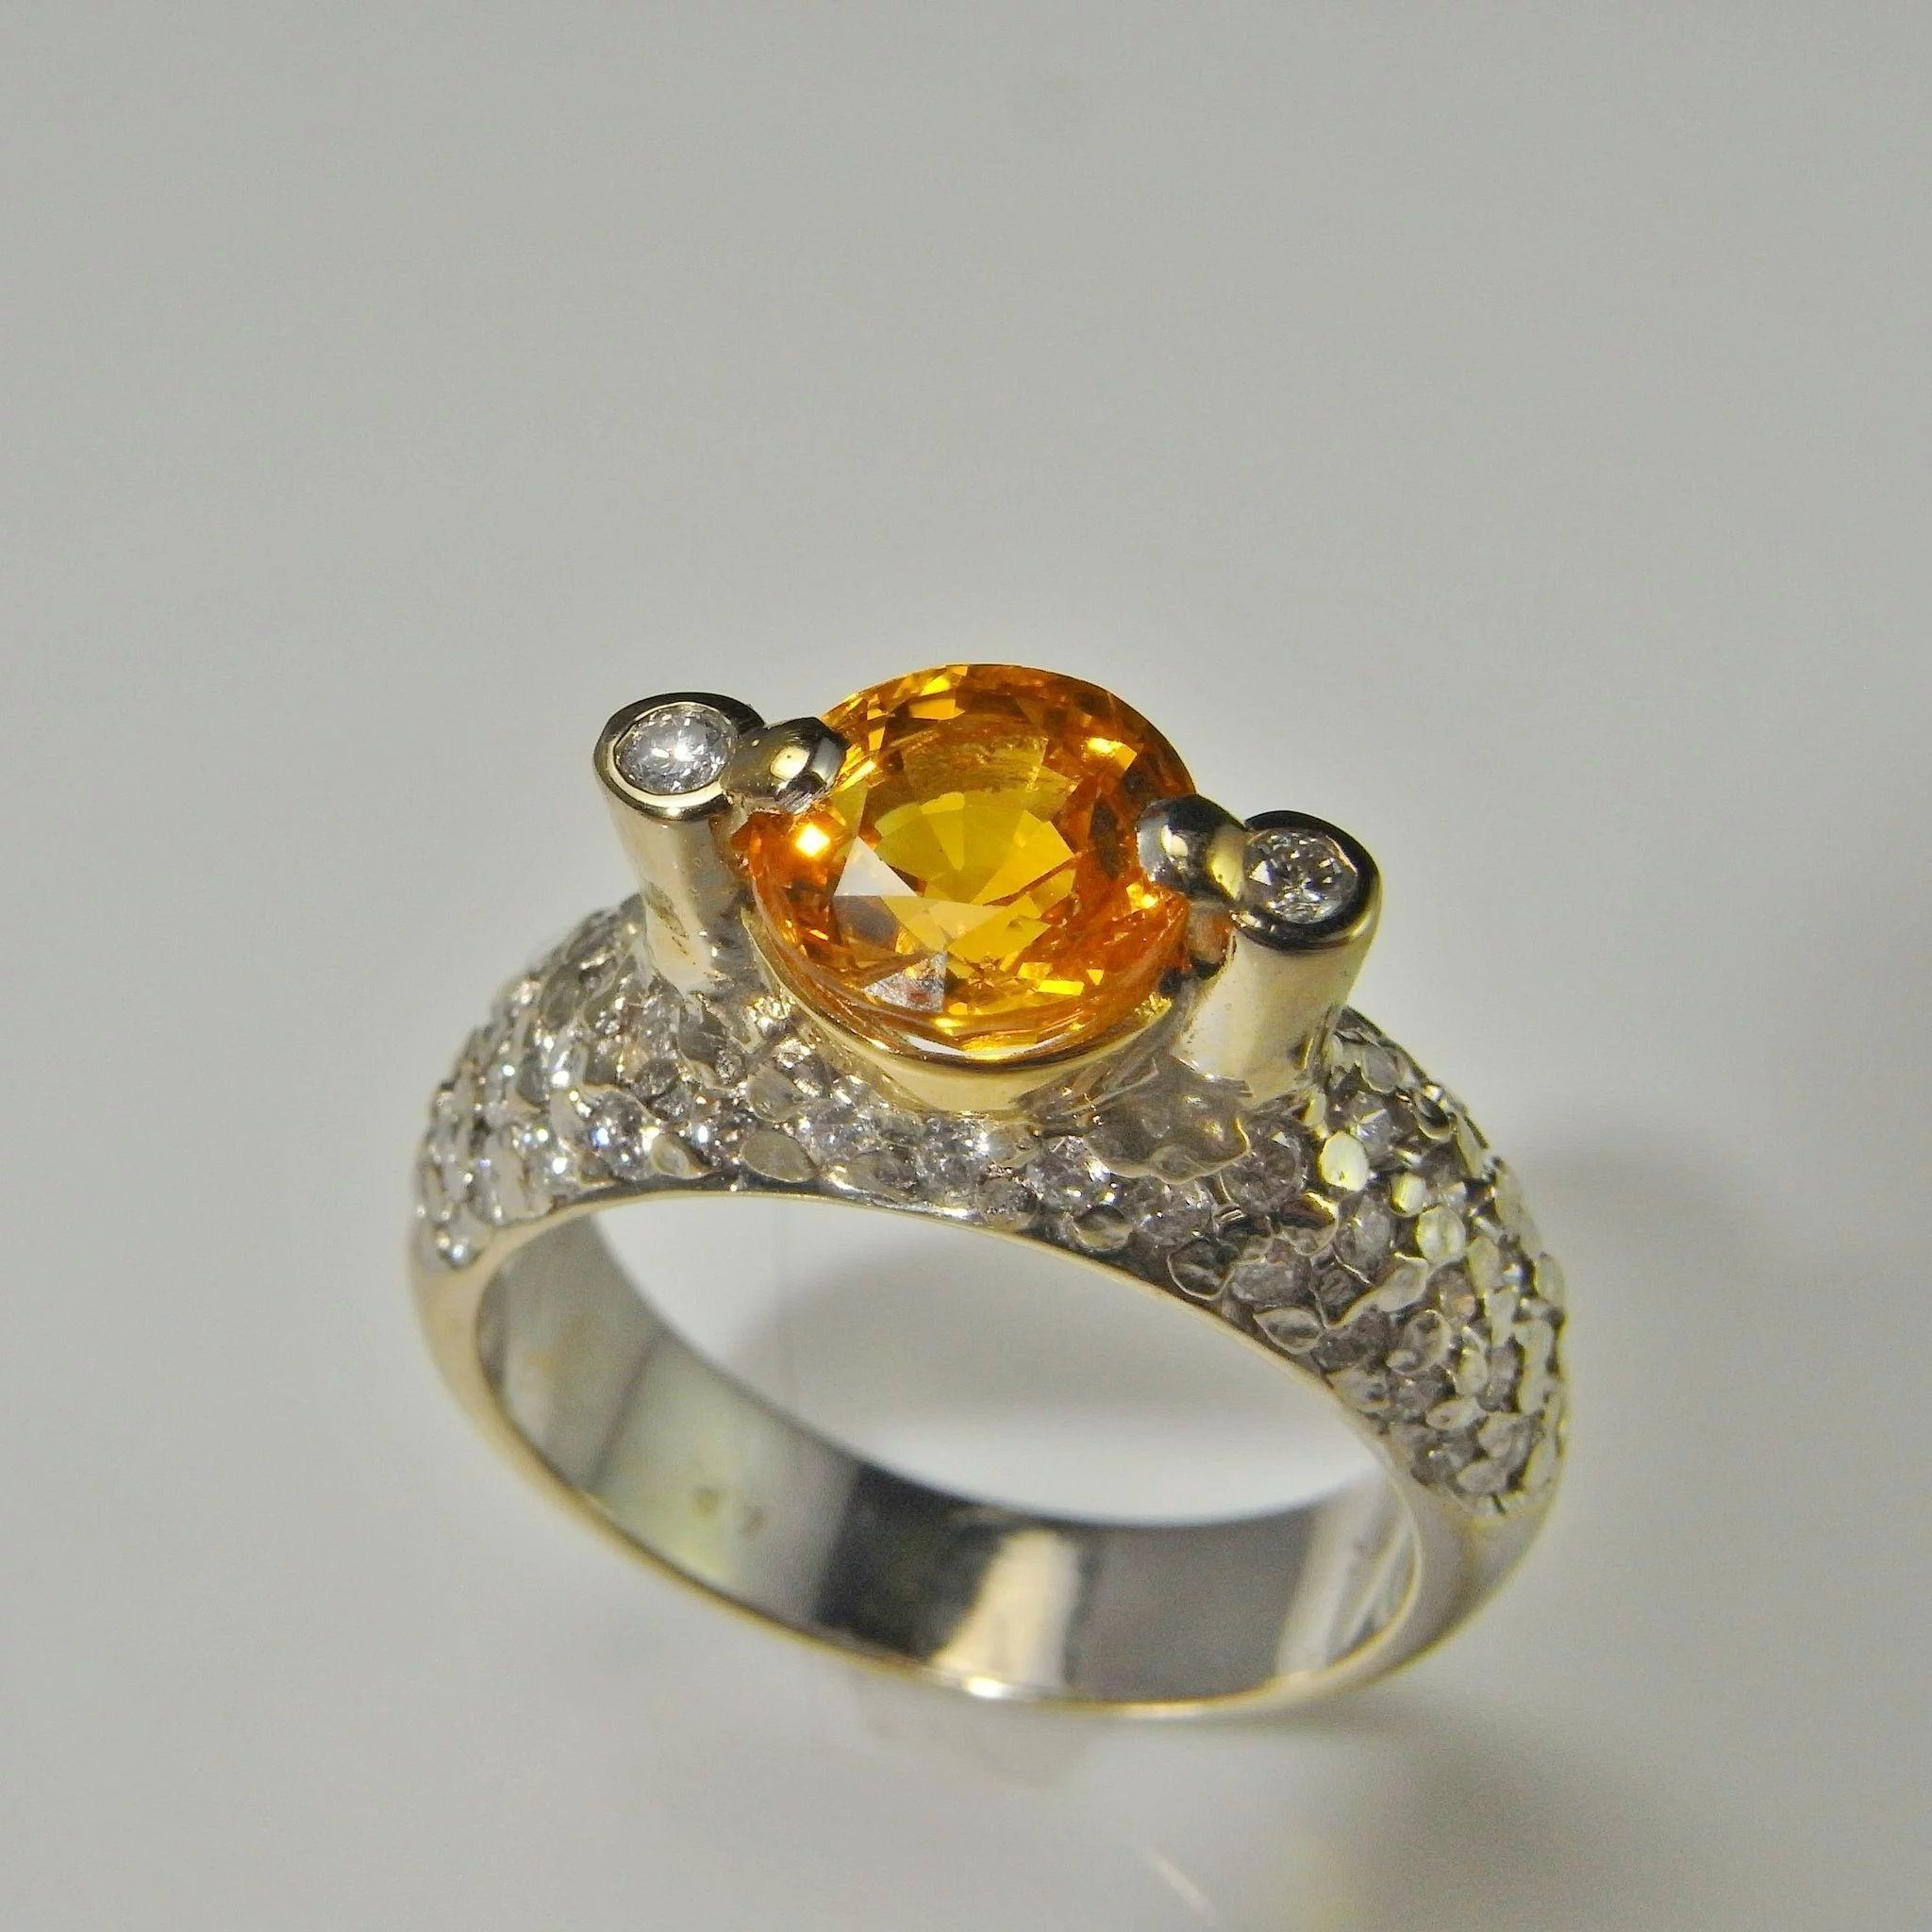 white gold rings pave citrine jewelry engagement pear branded diamond shaped ring orange non cocktail